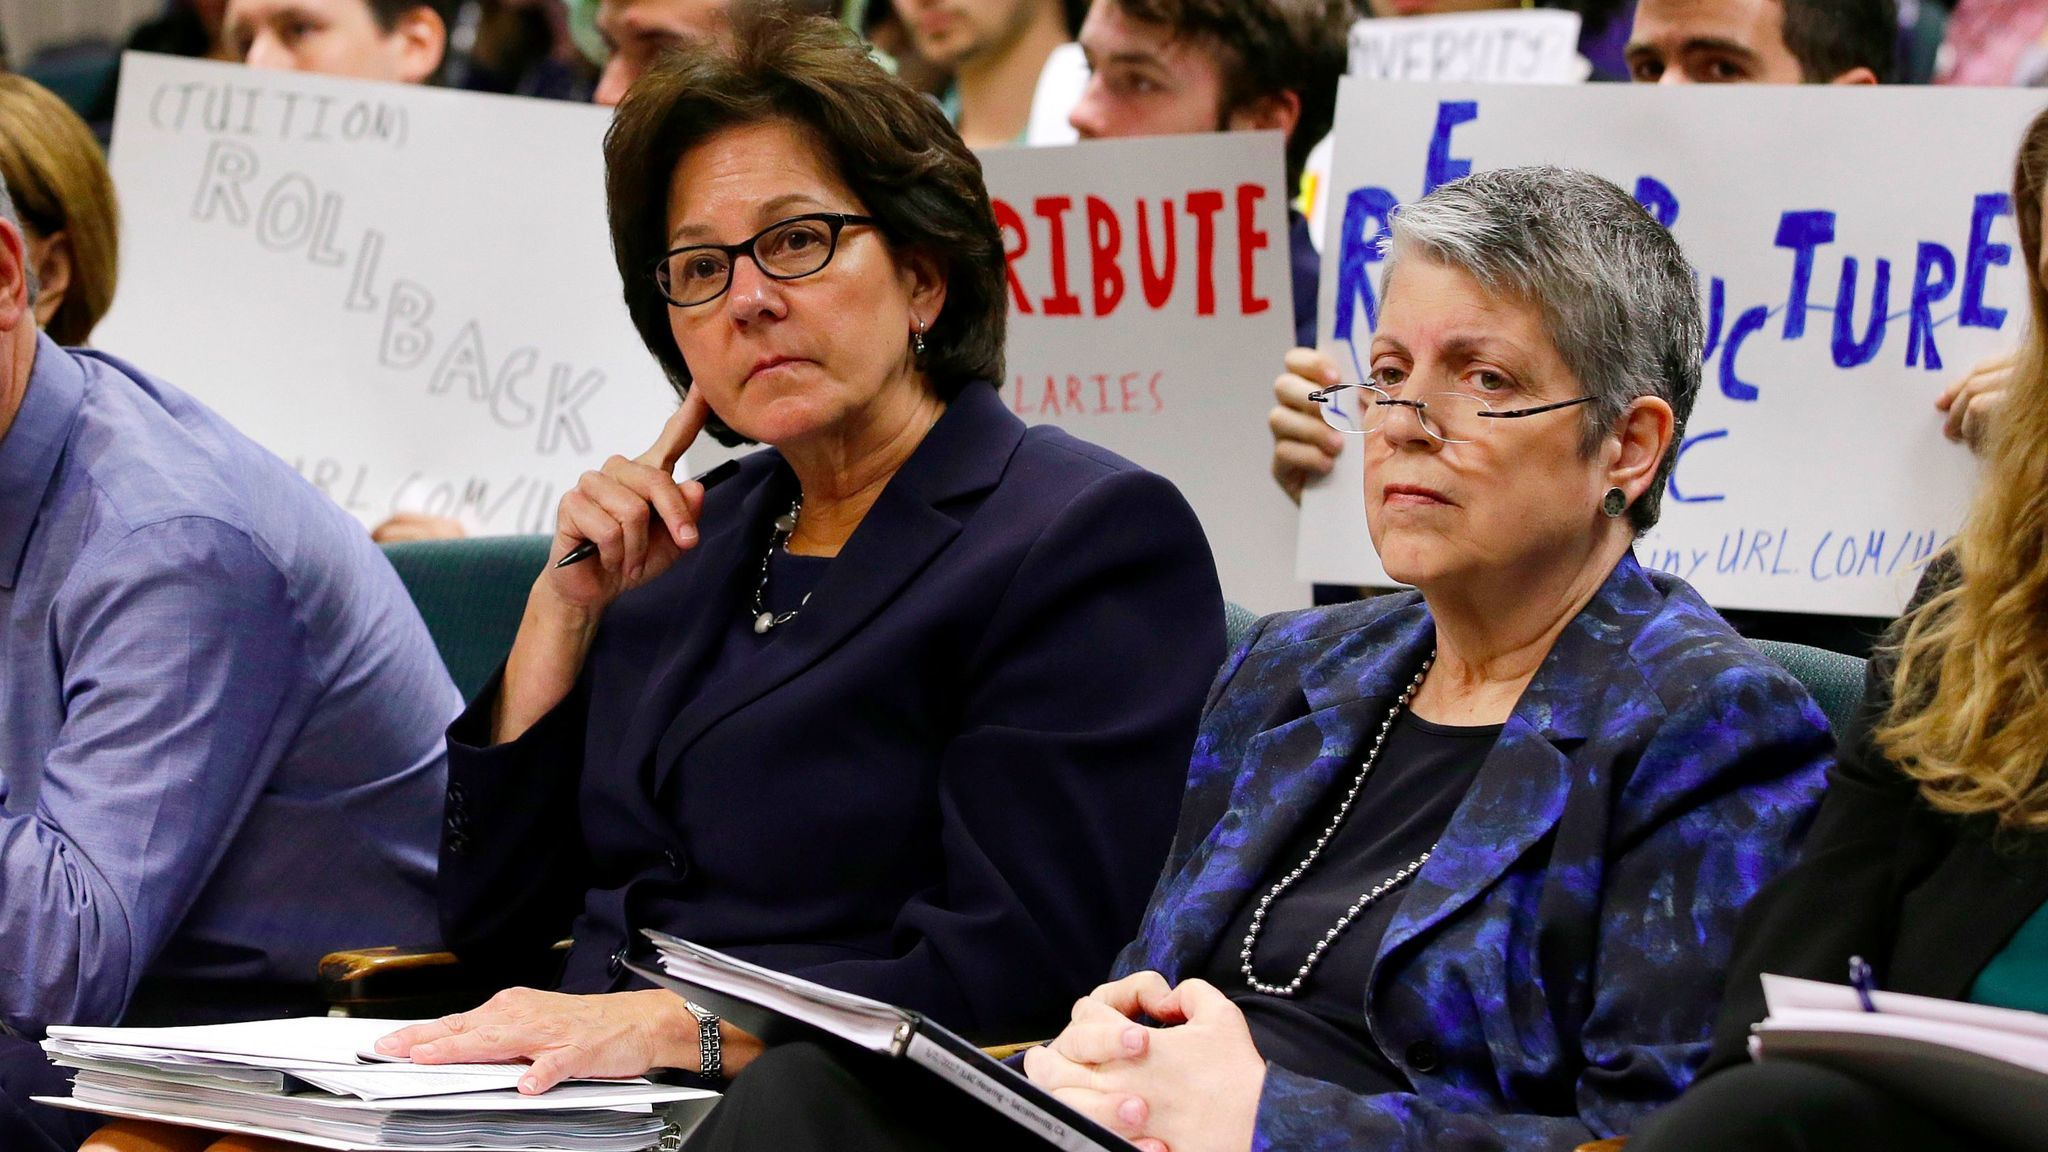 Monica Lozano, left, chair of the University of California Board of Regents, and UC President Janet Napolitano at a legislative hearing in the wake of a scathing audit on spending by Napolitano's office.